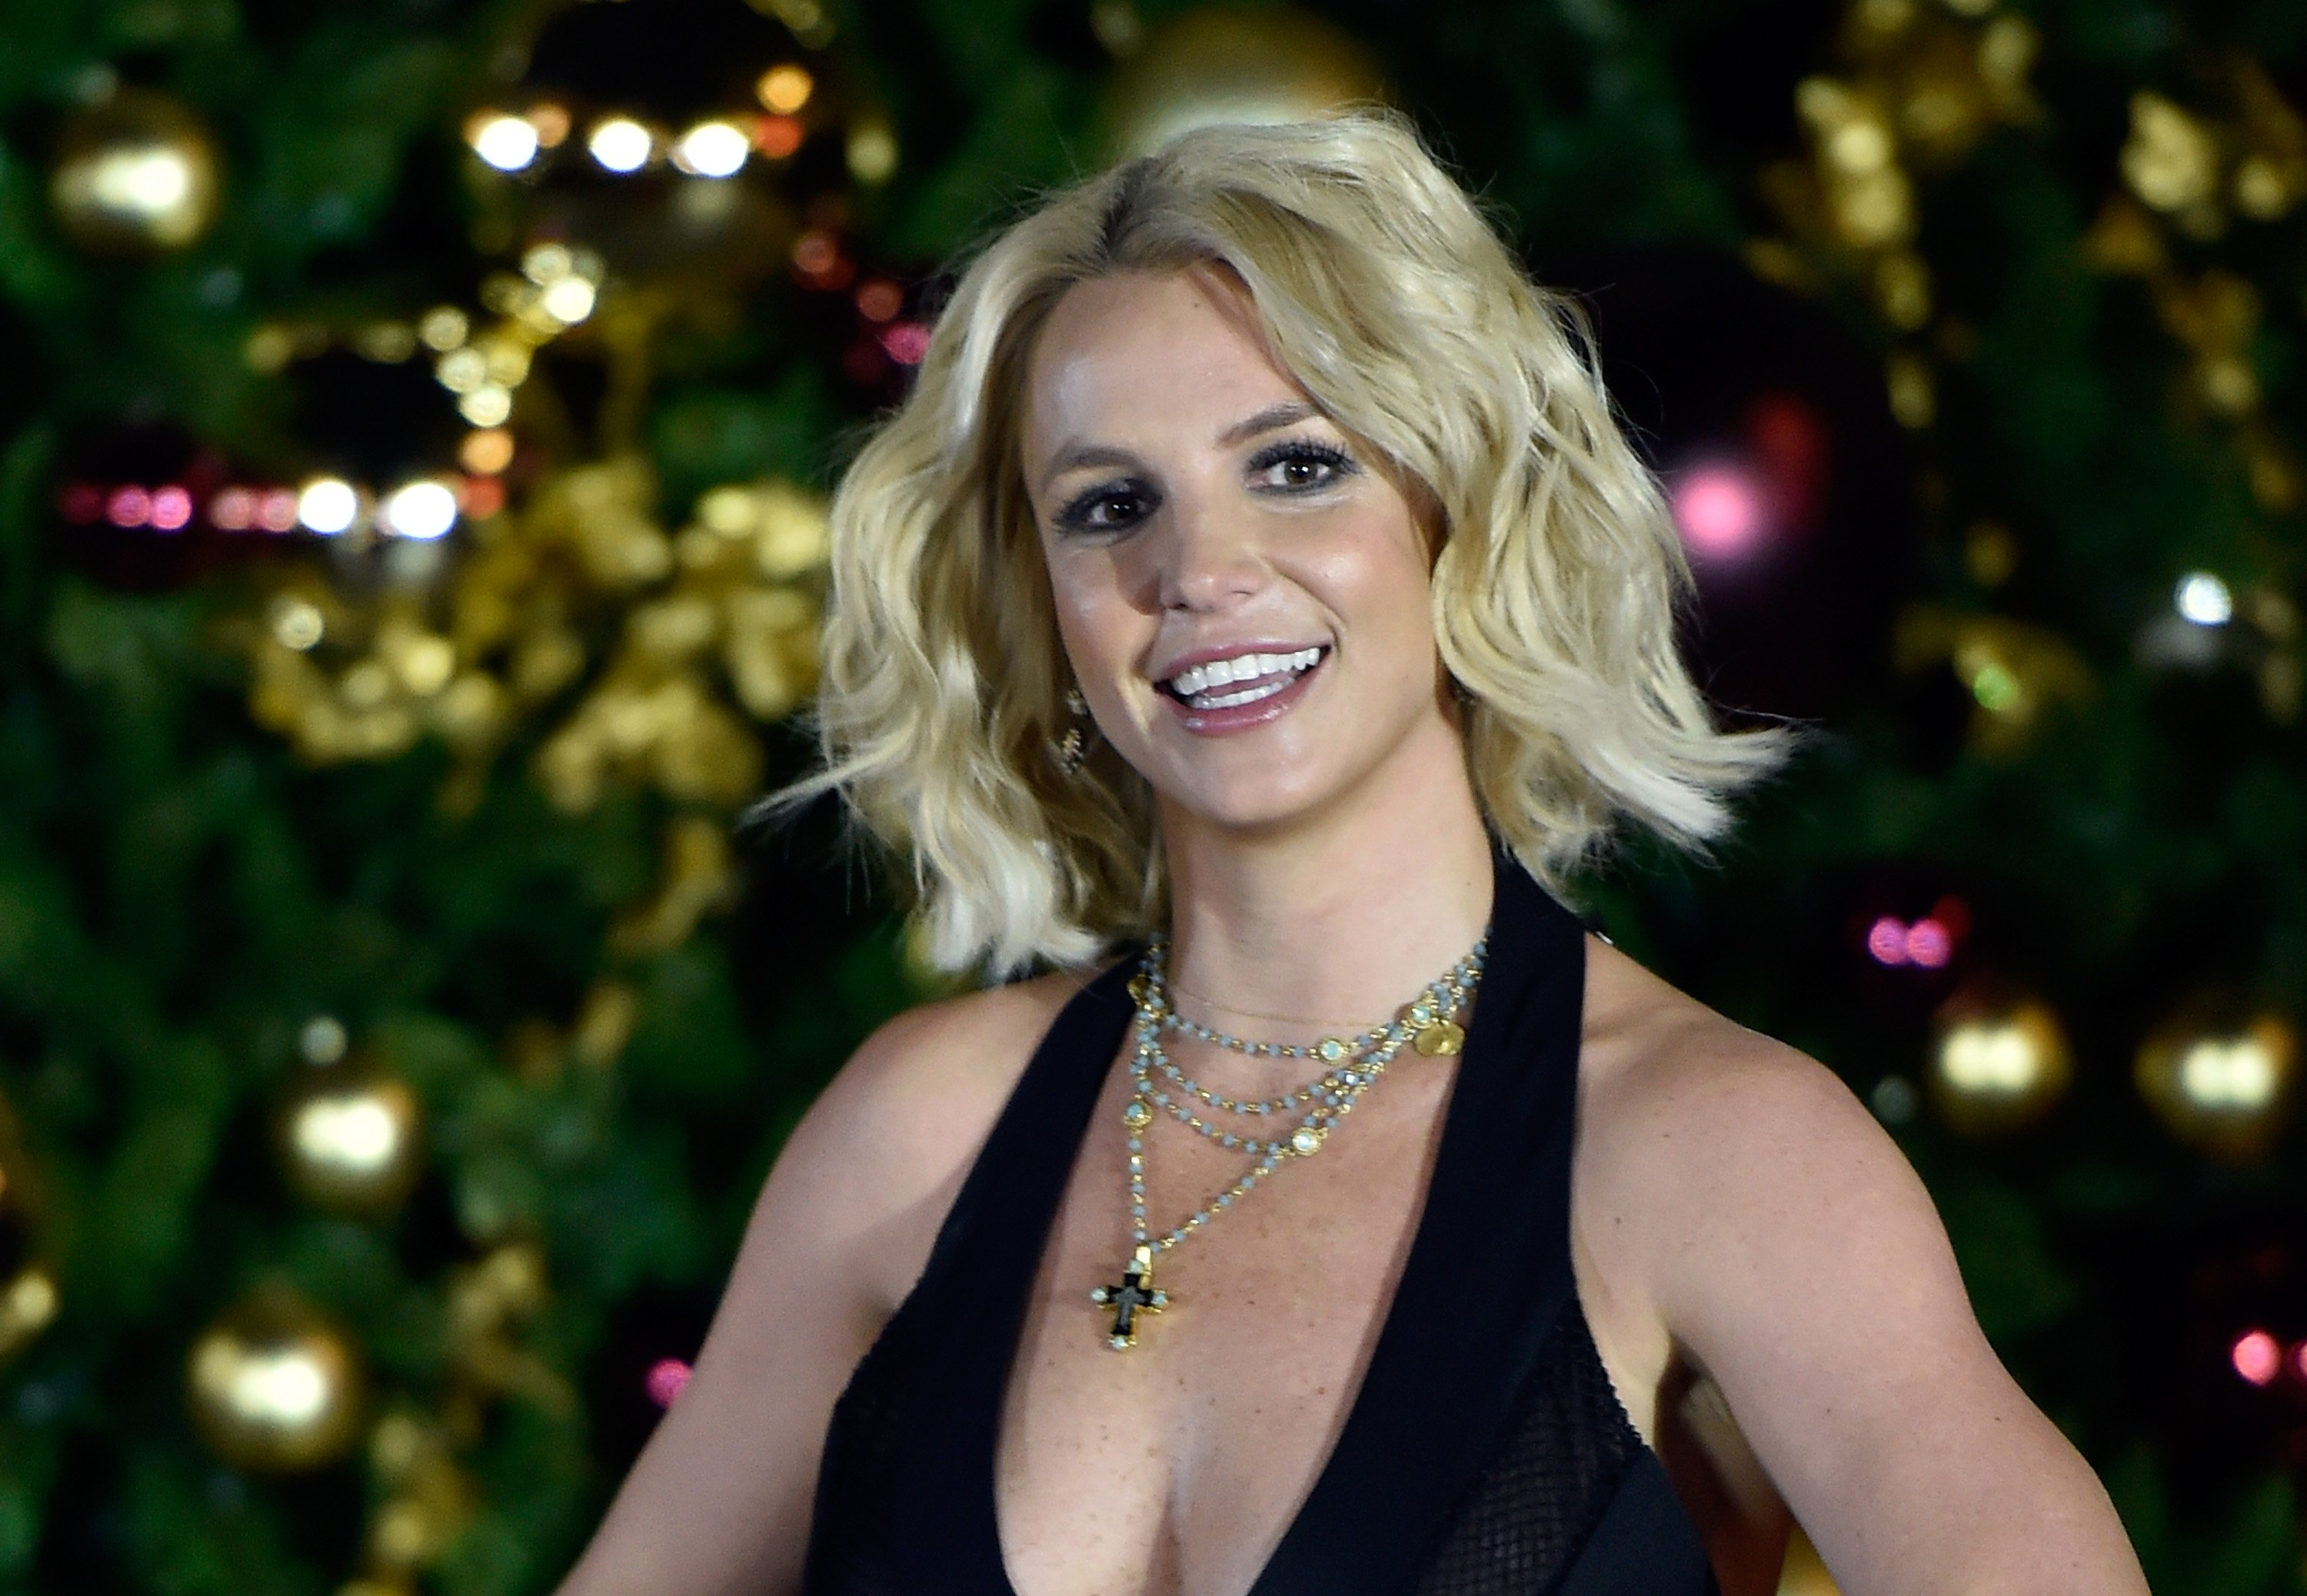 Image Source: Getty Images/David Becker |  Britney Spears arrives at a Christmas tree-lighting ceremony at The LINQ Promenade